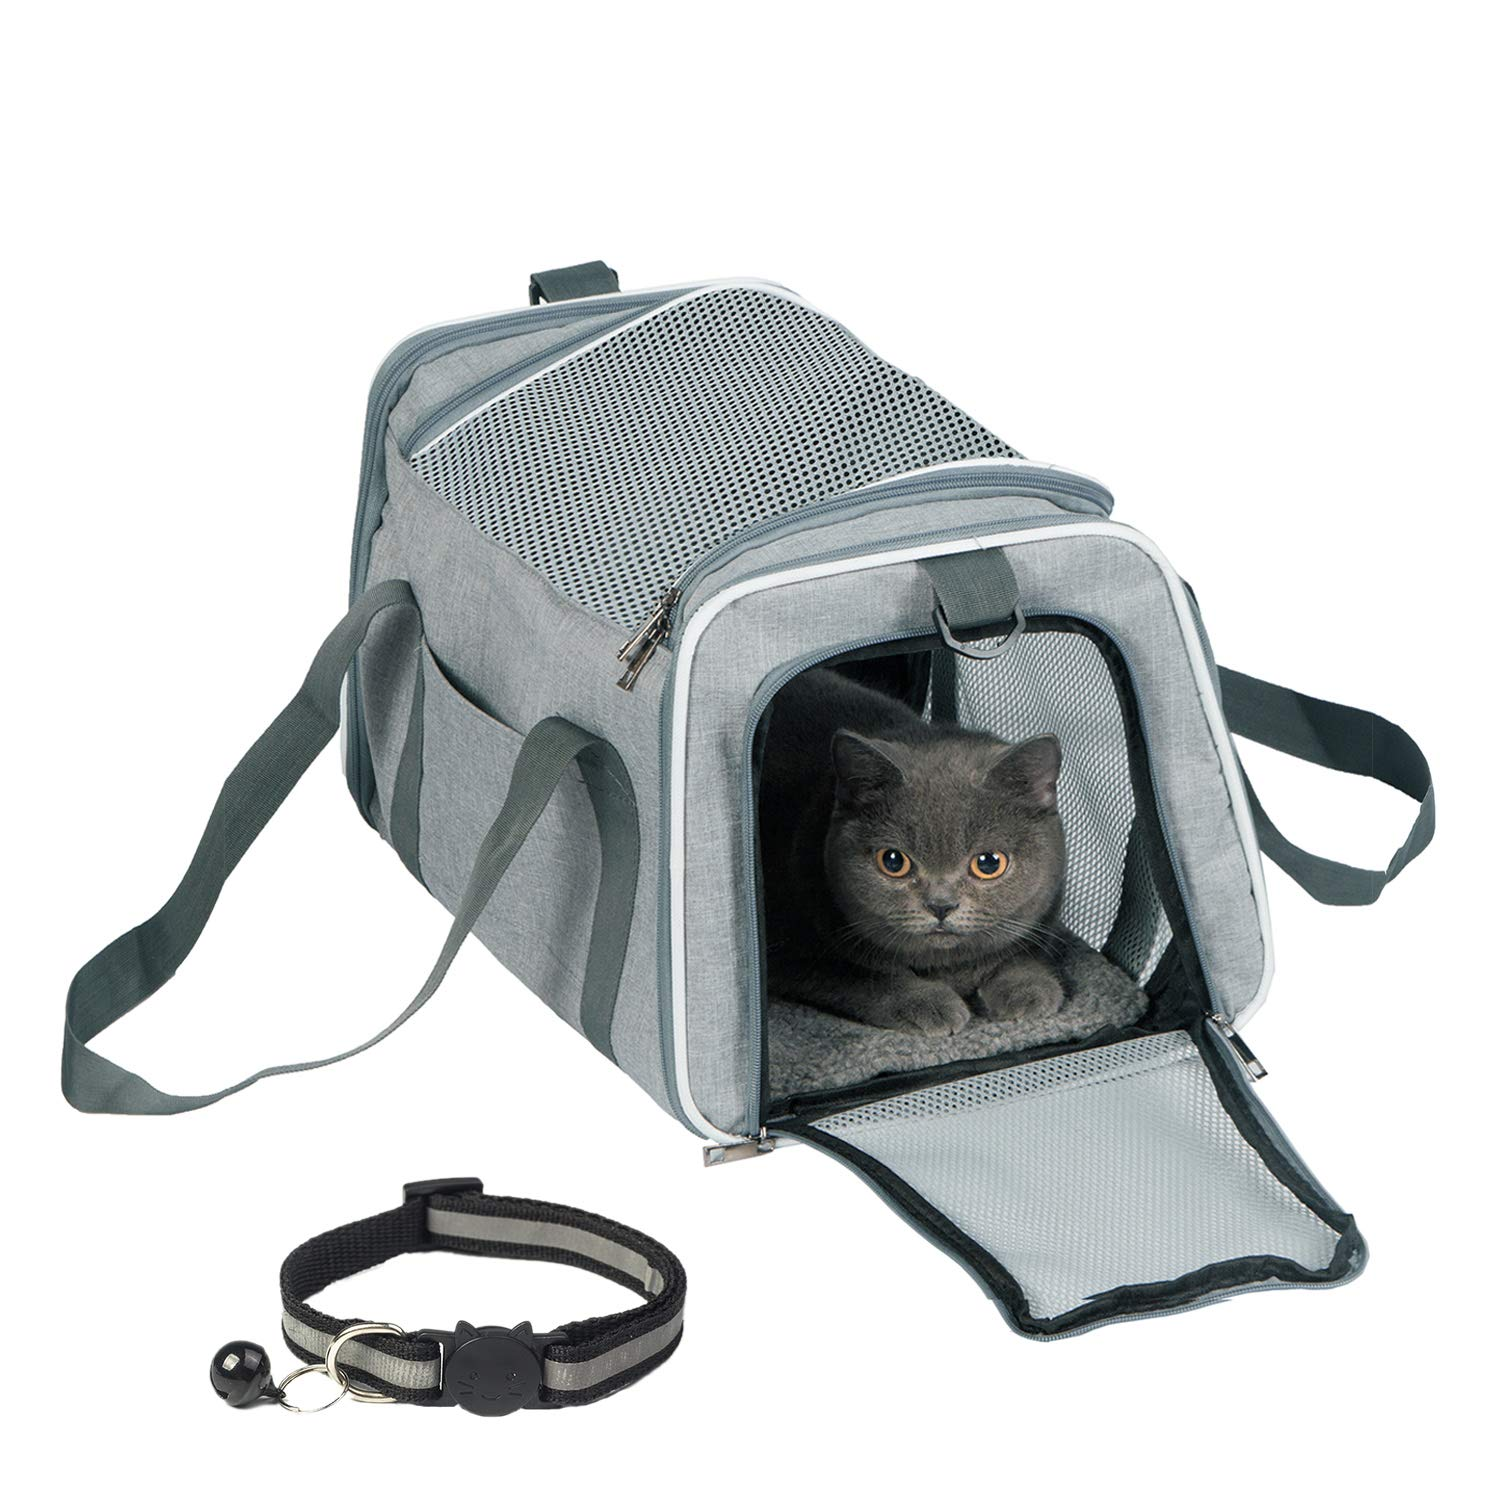 TCBOYING Airline Approved Cat Carrier,Soft Sided Pet Travel Carrier Medium Cat Carrier with Fleece Pad for Cats, Puppy…